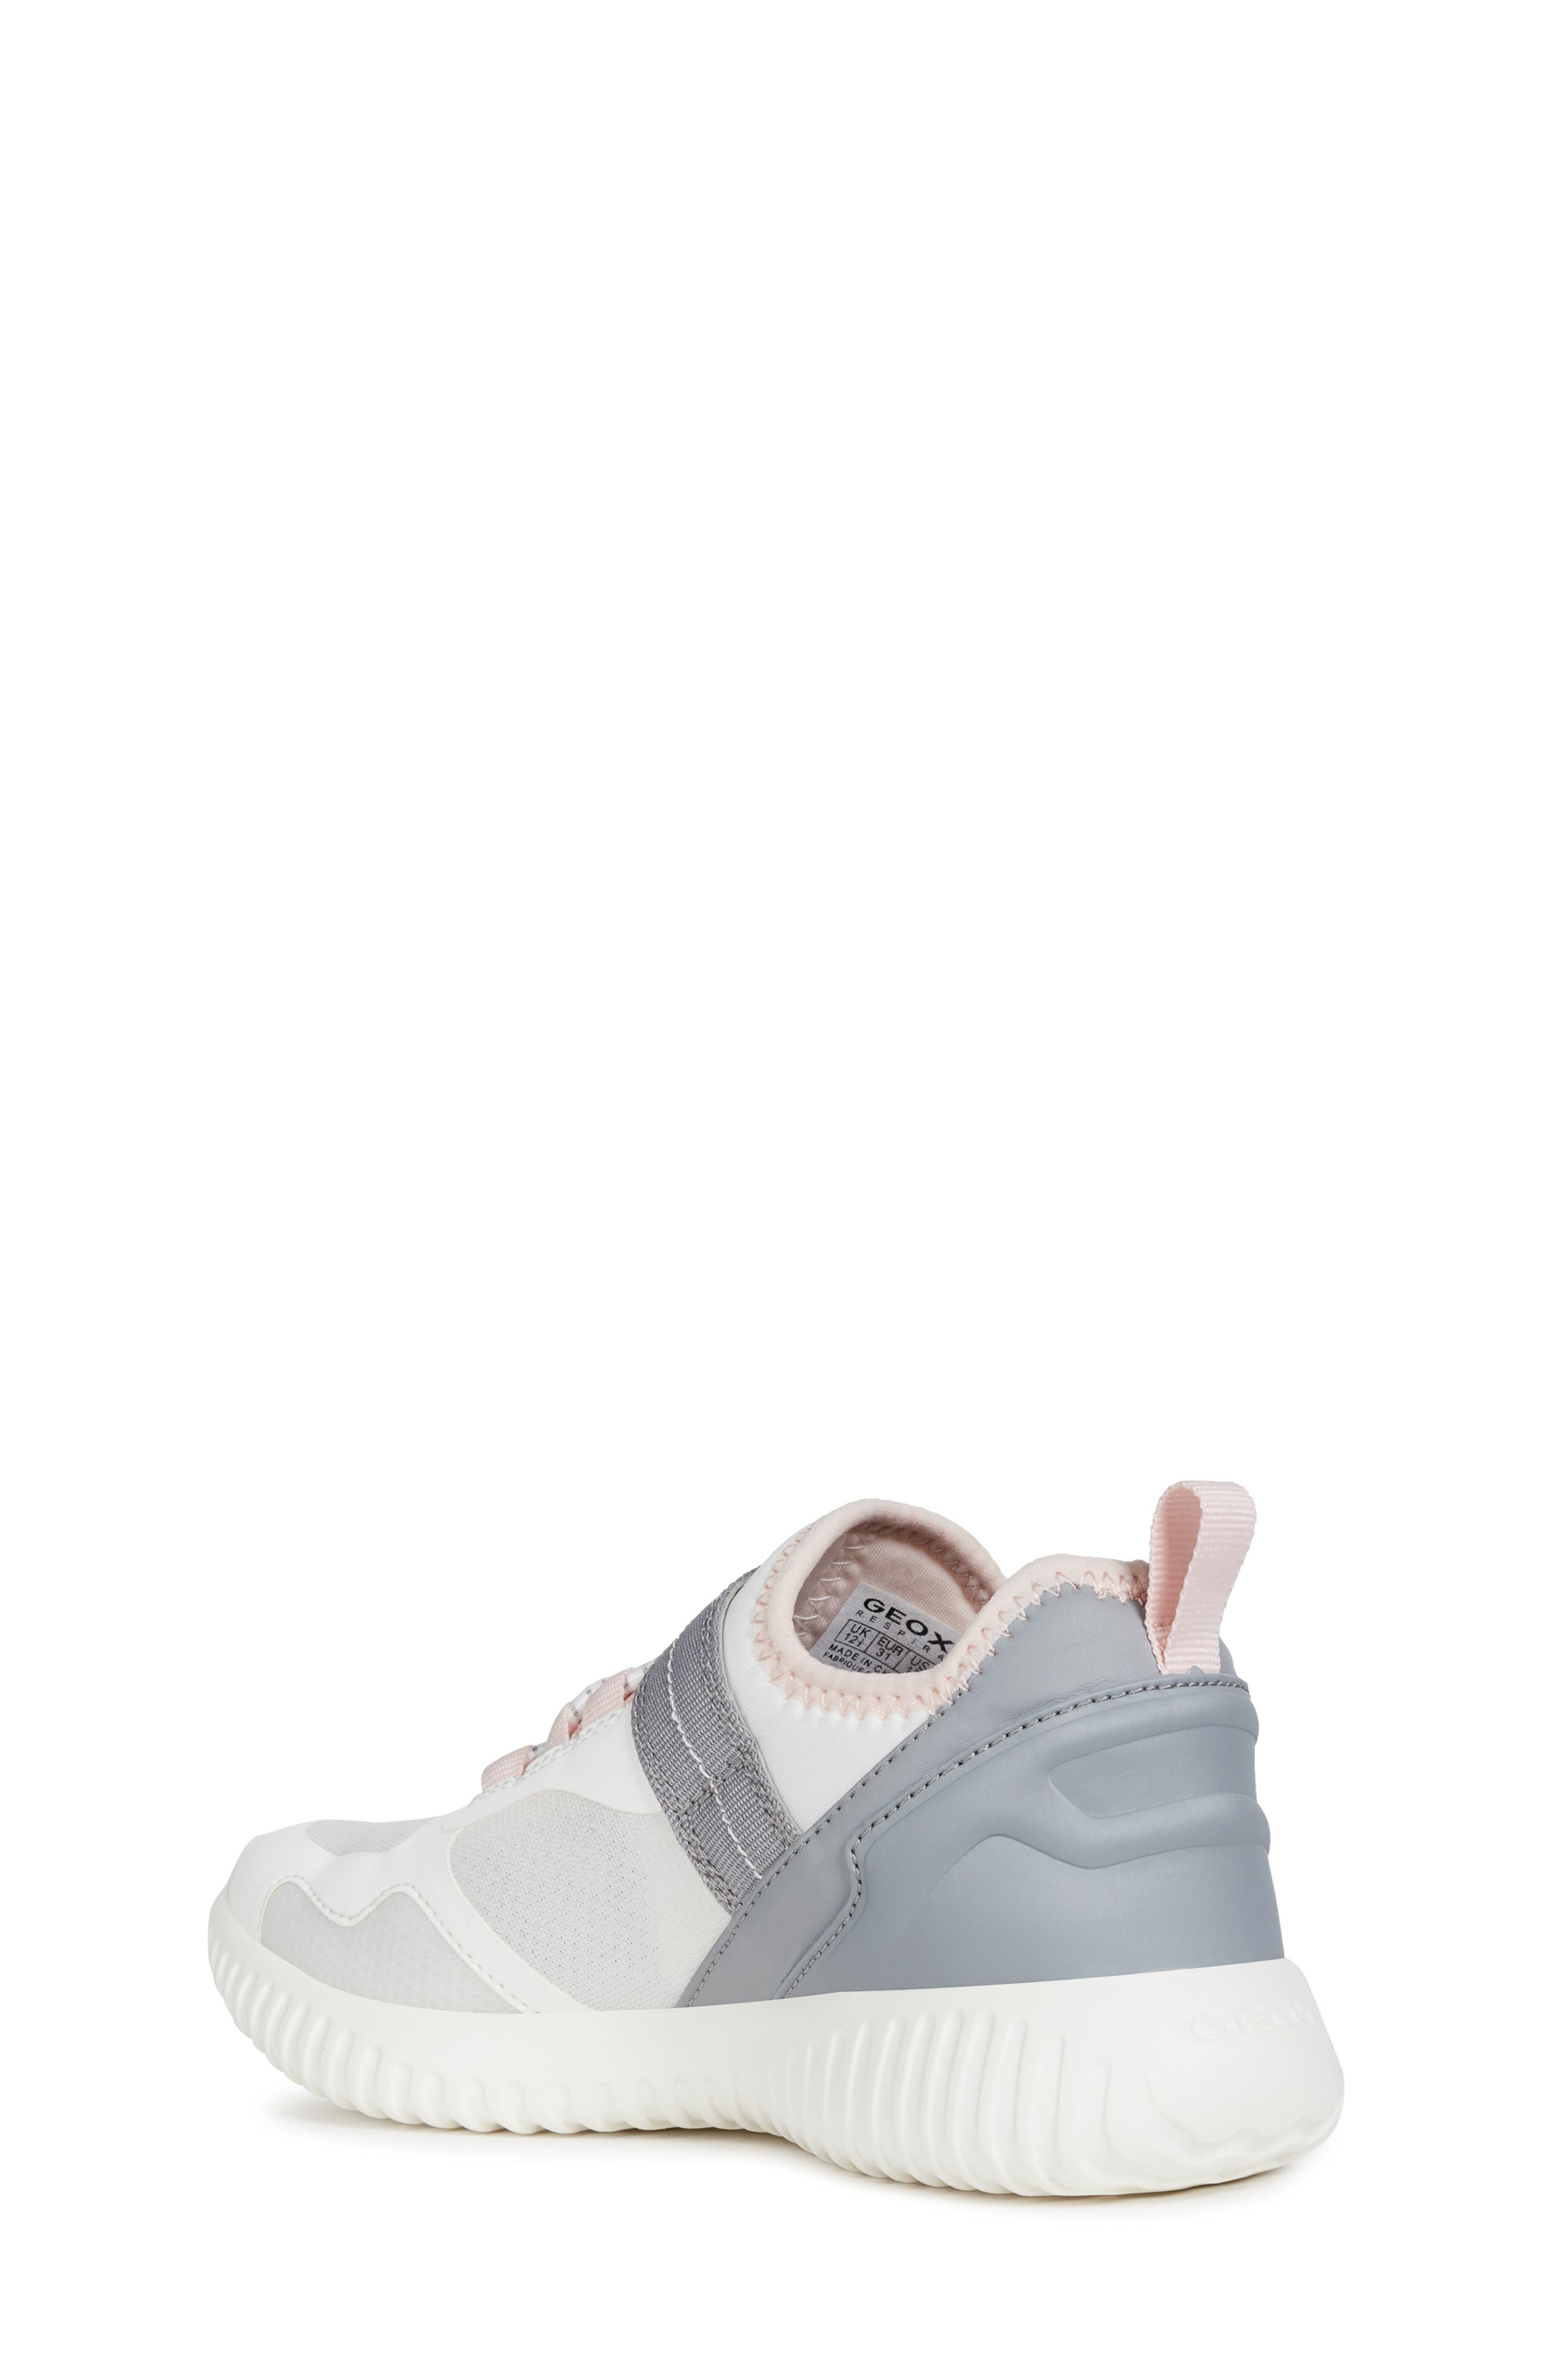 Waviness Sneaker,                             Alternate thumbnail 2, color,                             WHITE/ GREY